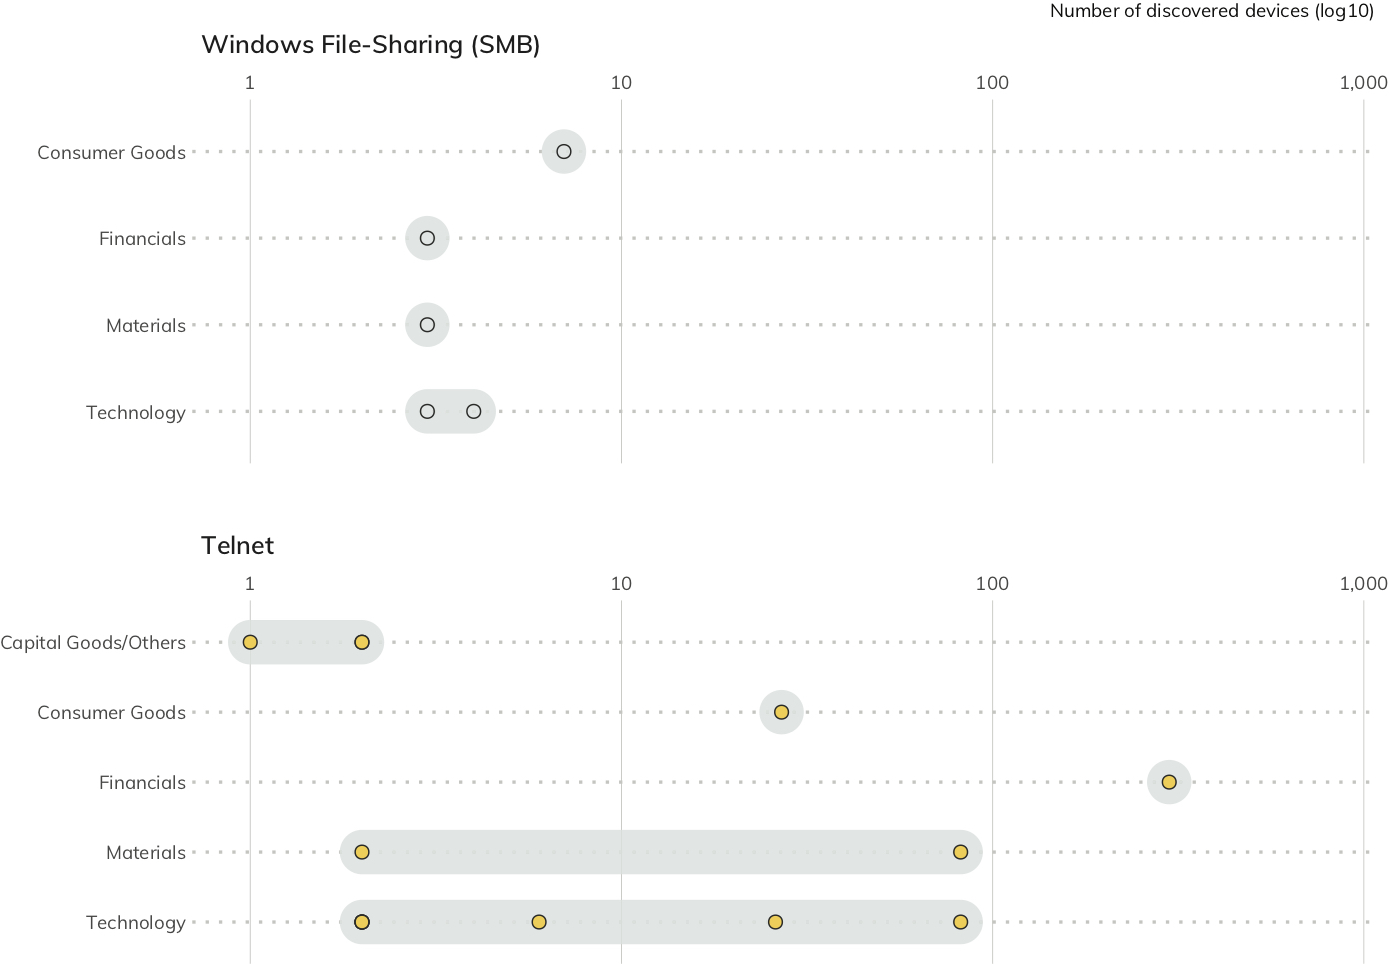 Figure 15: Exposure of Telnet and Windows File Sharing by Industry (Each dot represent one organization; position on axis = number of assets discovered.)